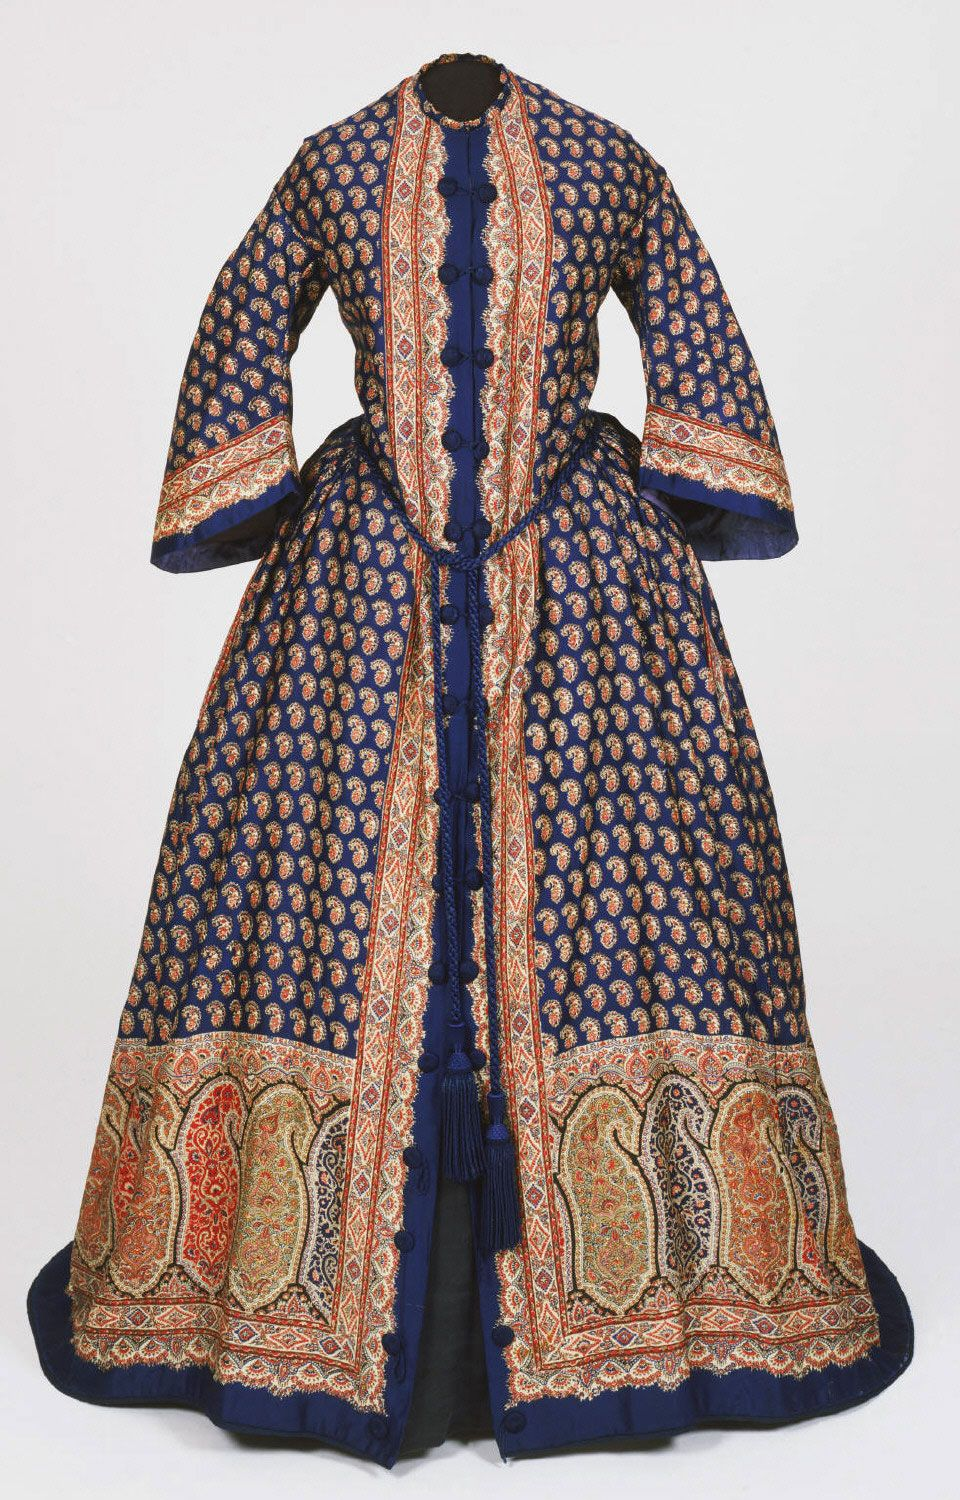 Philadelphia Museum of Art - Collections Object : Woman's Dressing Gown (Morning Dress) Geography: Made in United States, North and Central America Date: c. 1850 Medium: Printed wool